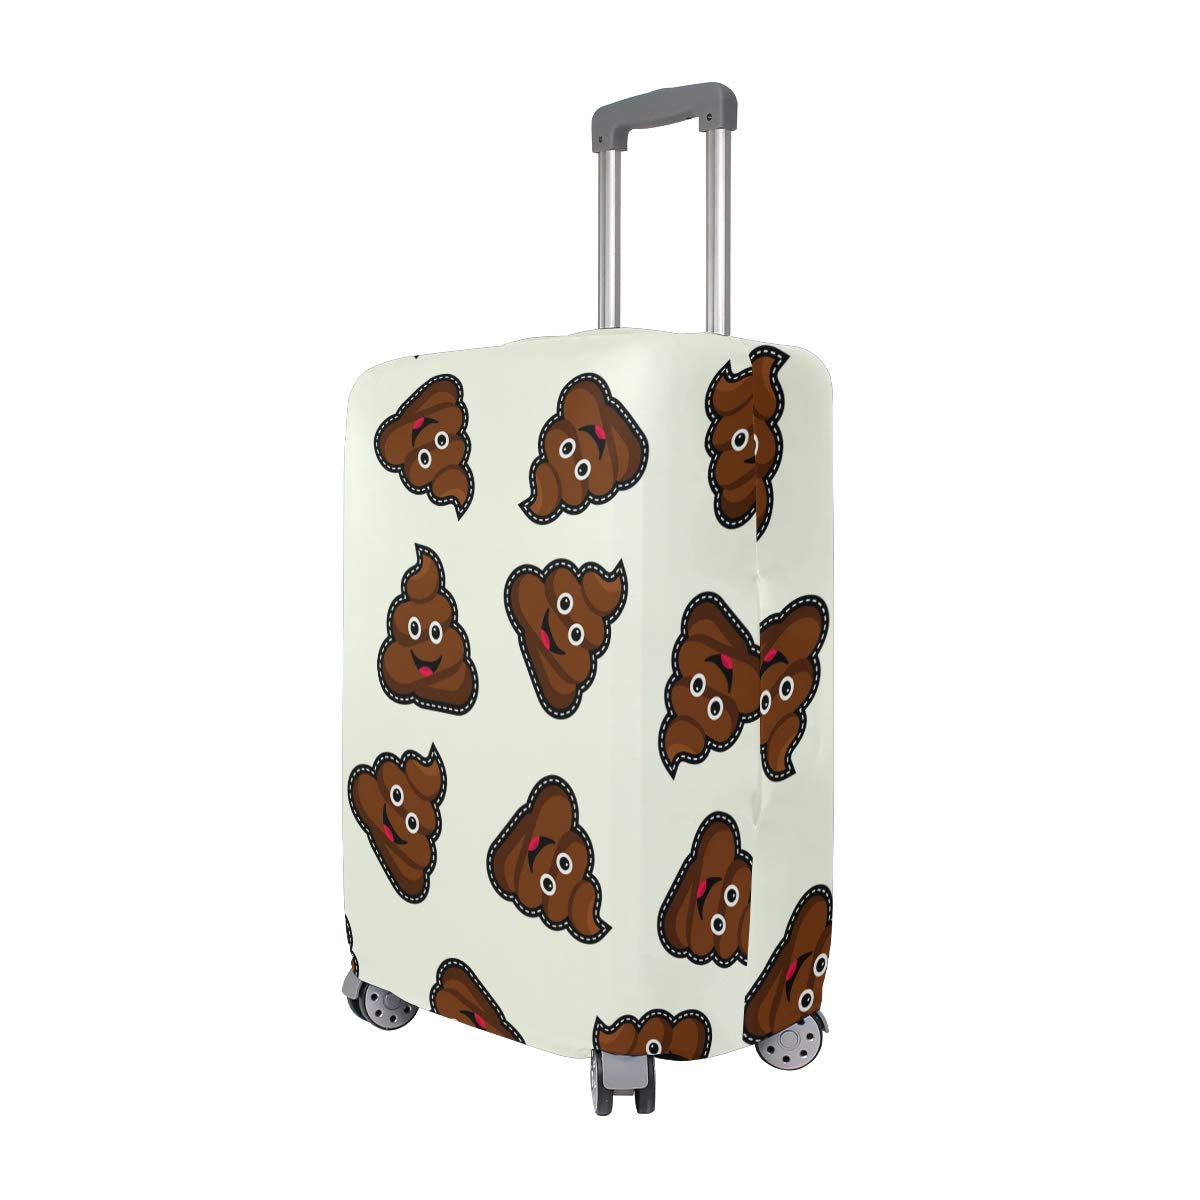 Baggage Covers Dark Brown Poop Cartoon Pattern Washable Protective Case